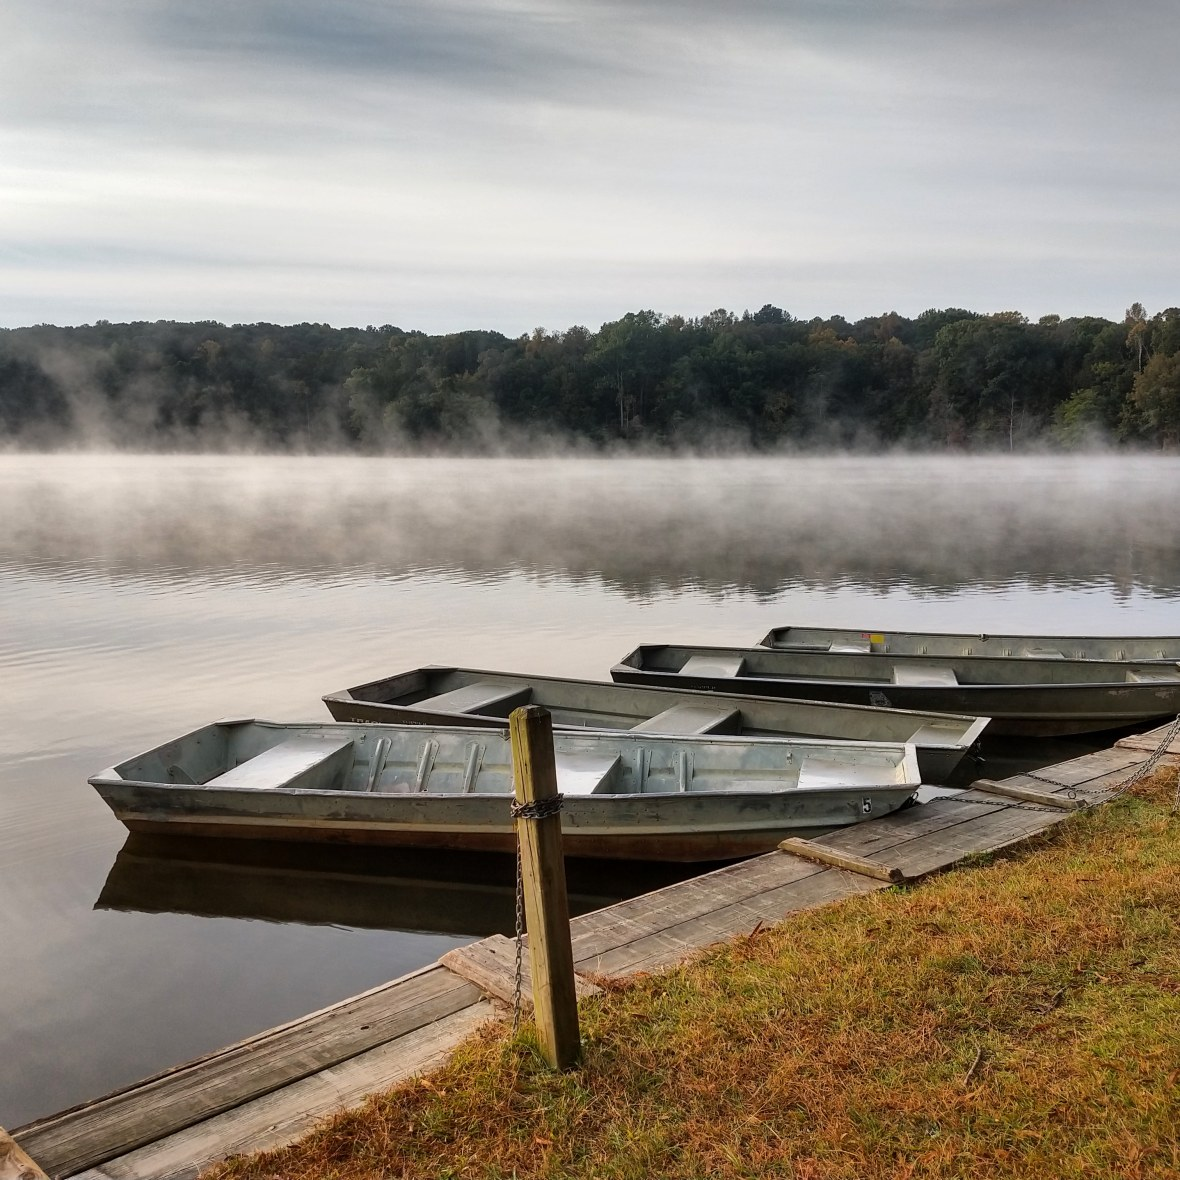 Reservoir @ Sweetwater Creek State Park – Photo by Teresa Rosche Ott